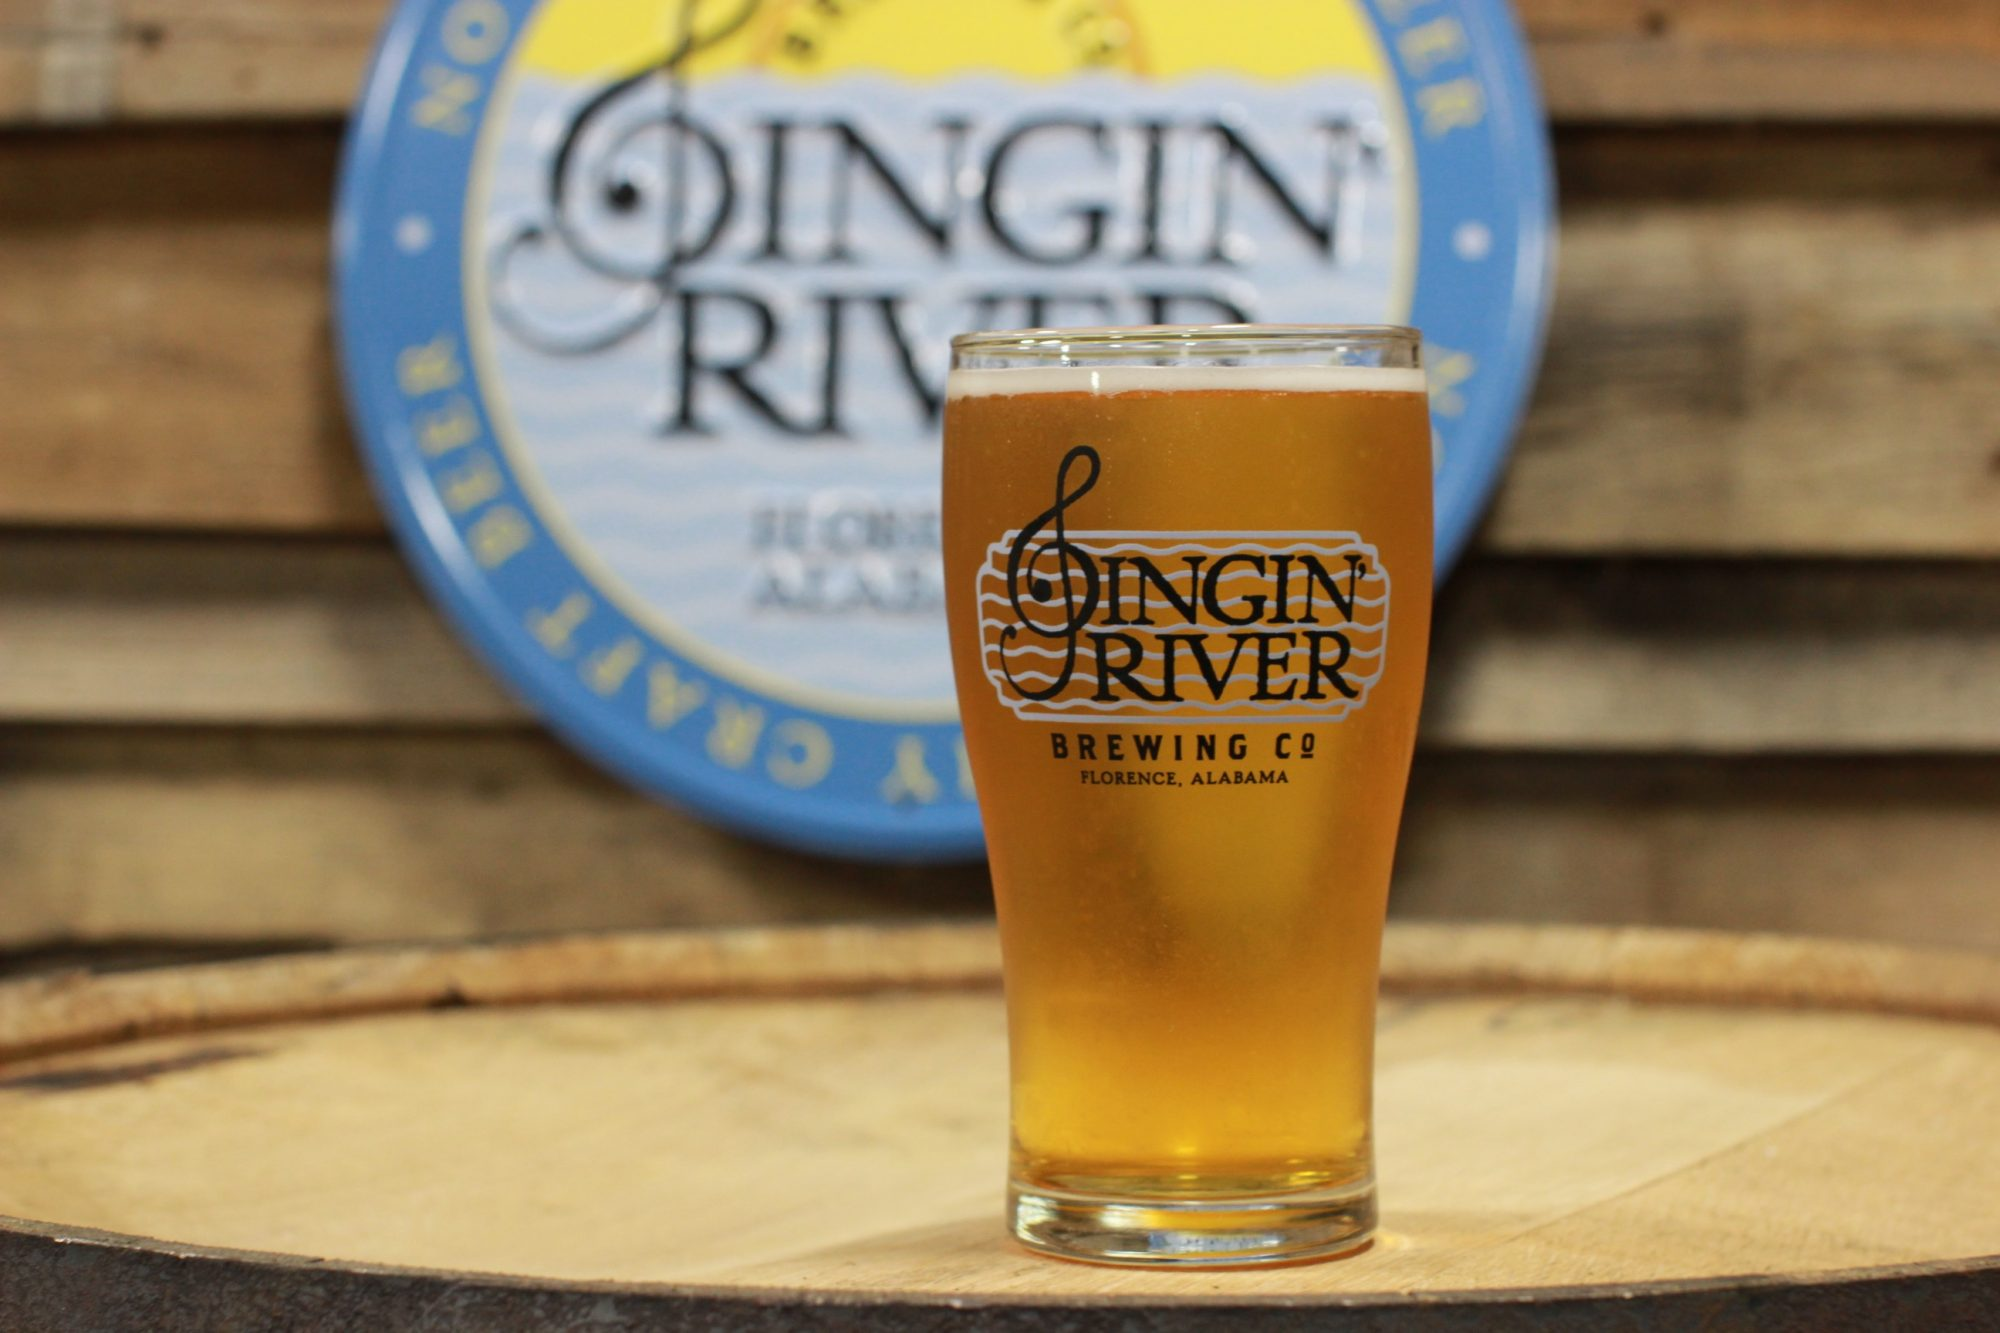 Singin' River offers an IPA, a Blonde, and a rich Porter, which was a favorite among our staff.